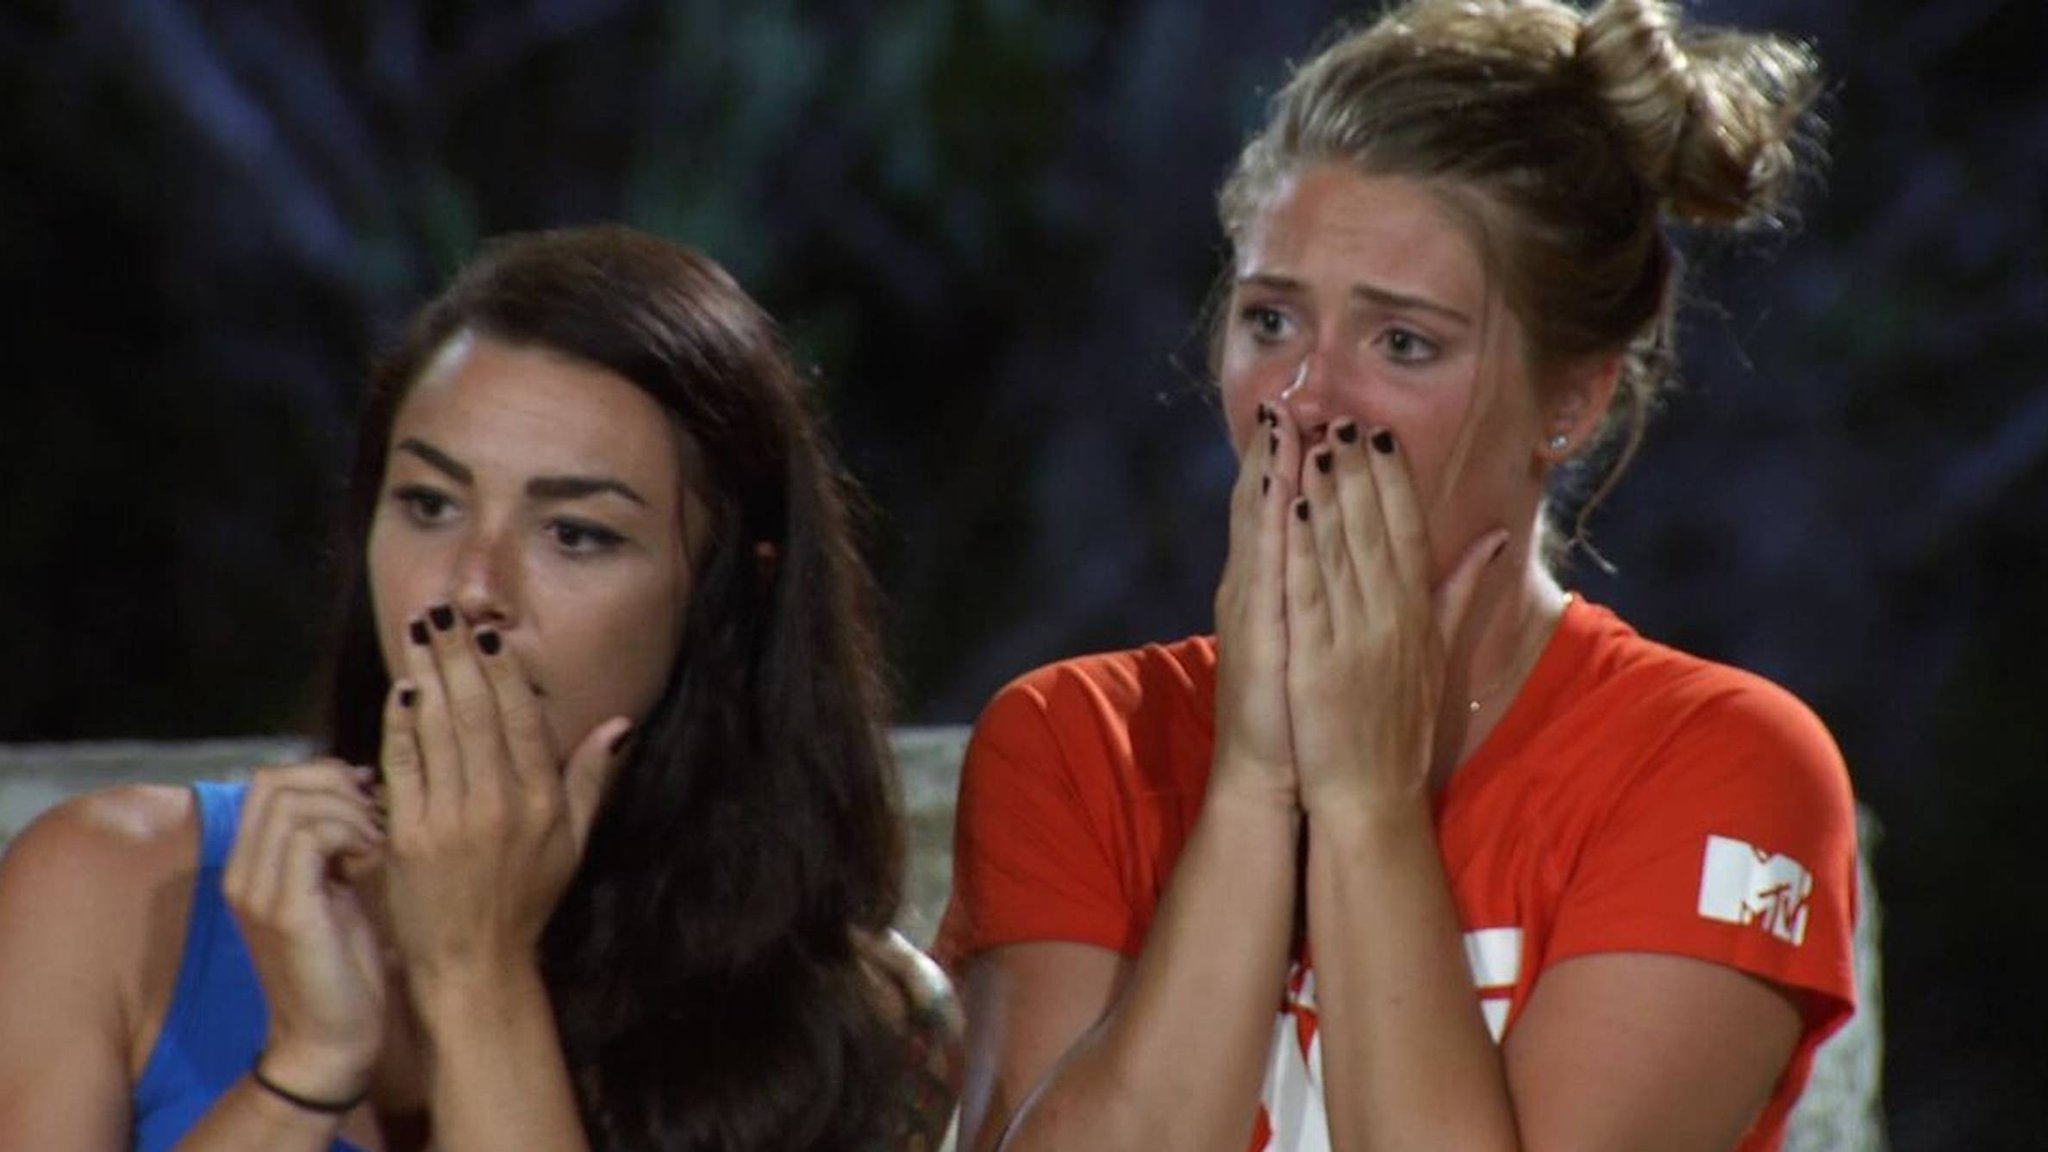 Are Jenna and Kailah running #TheChallengeXXX? https://t.co/v7ztZqpLsT https://t.co/oyhwTRtaxu